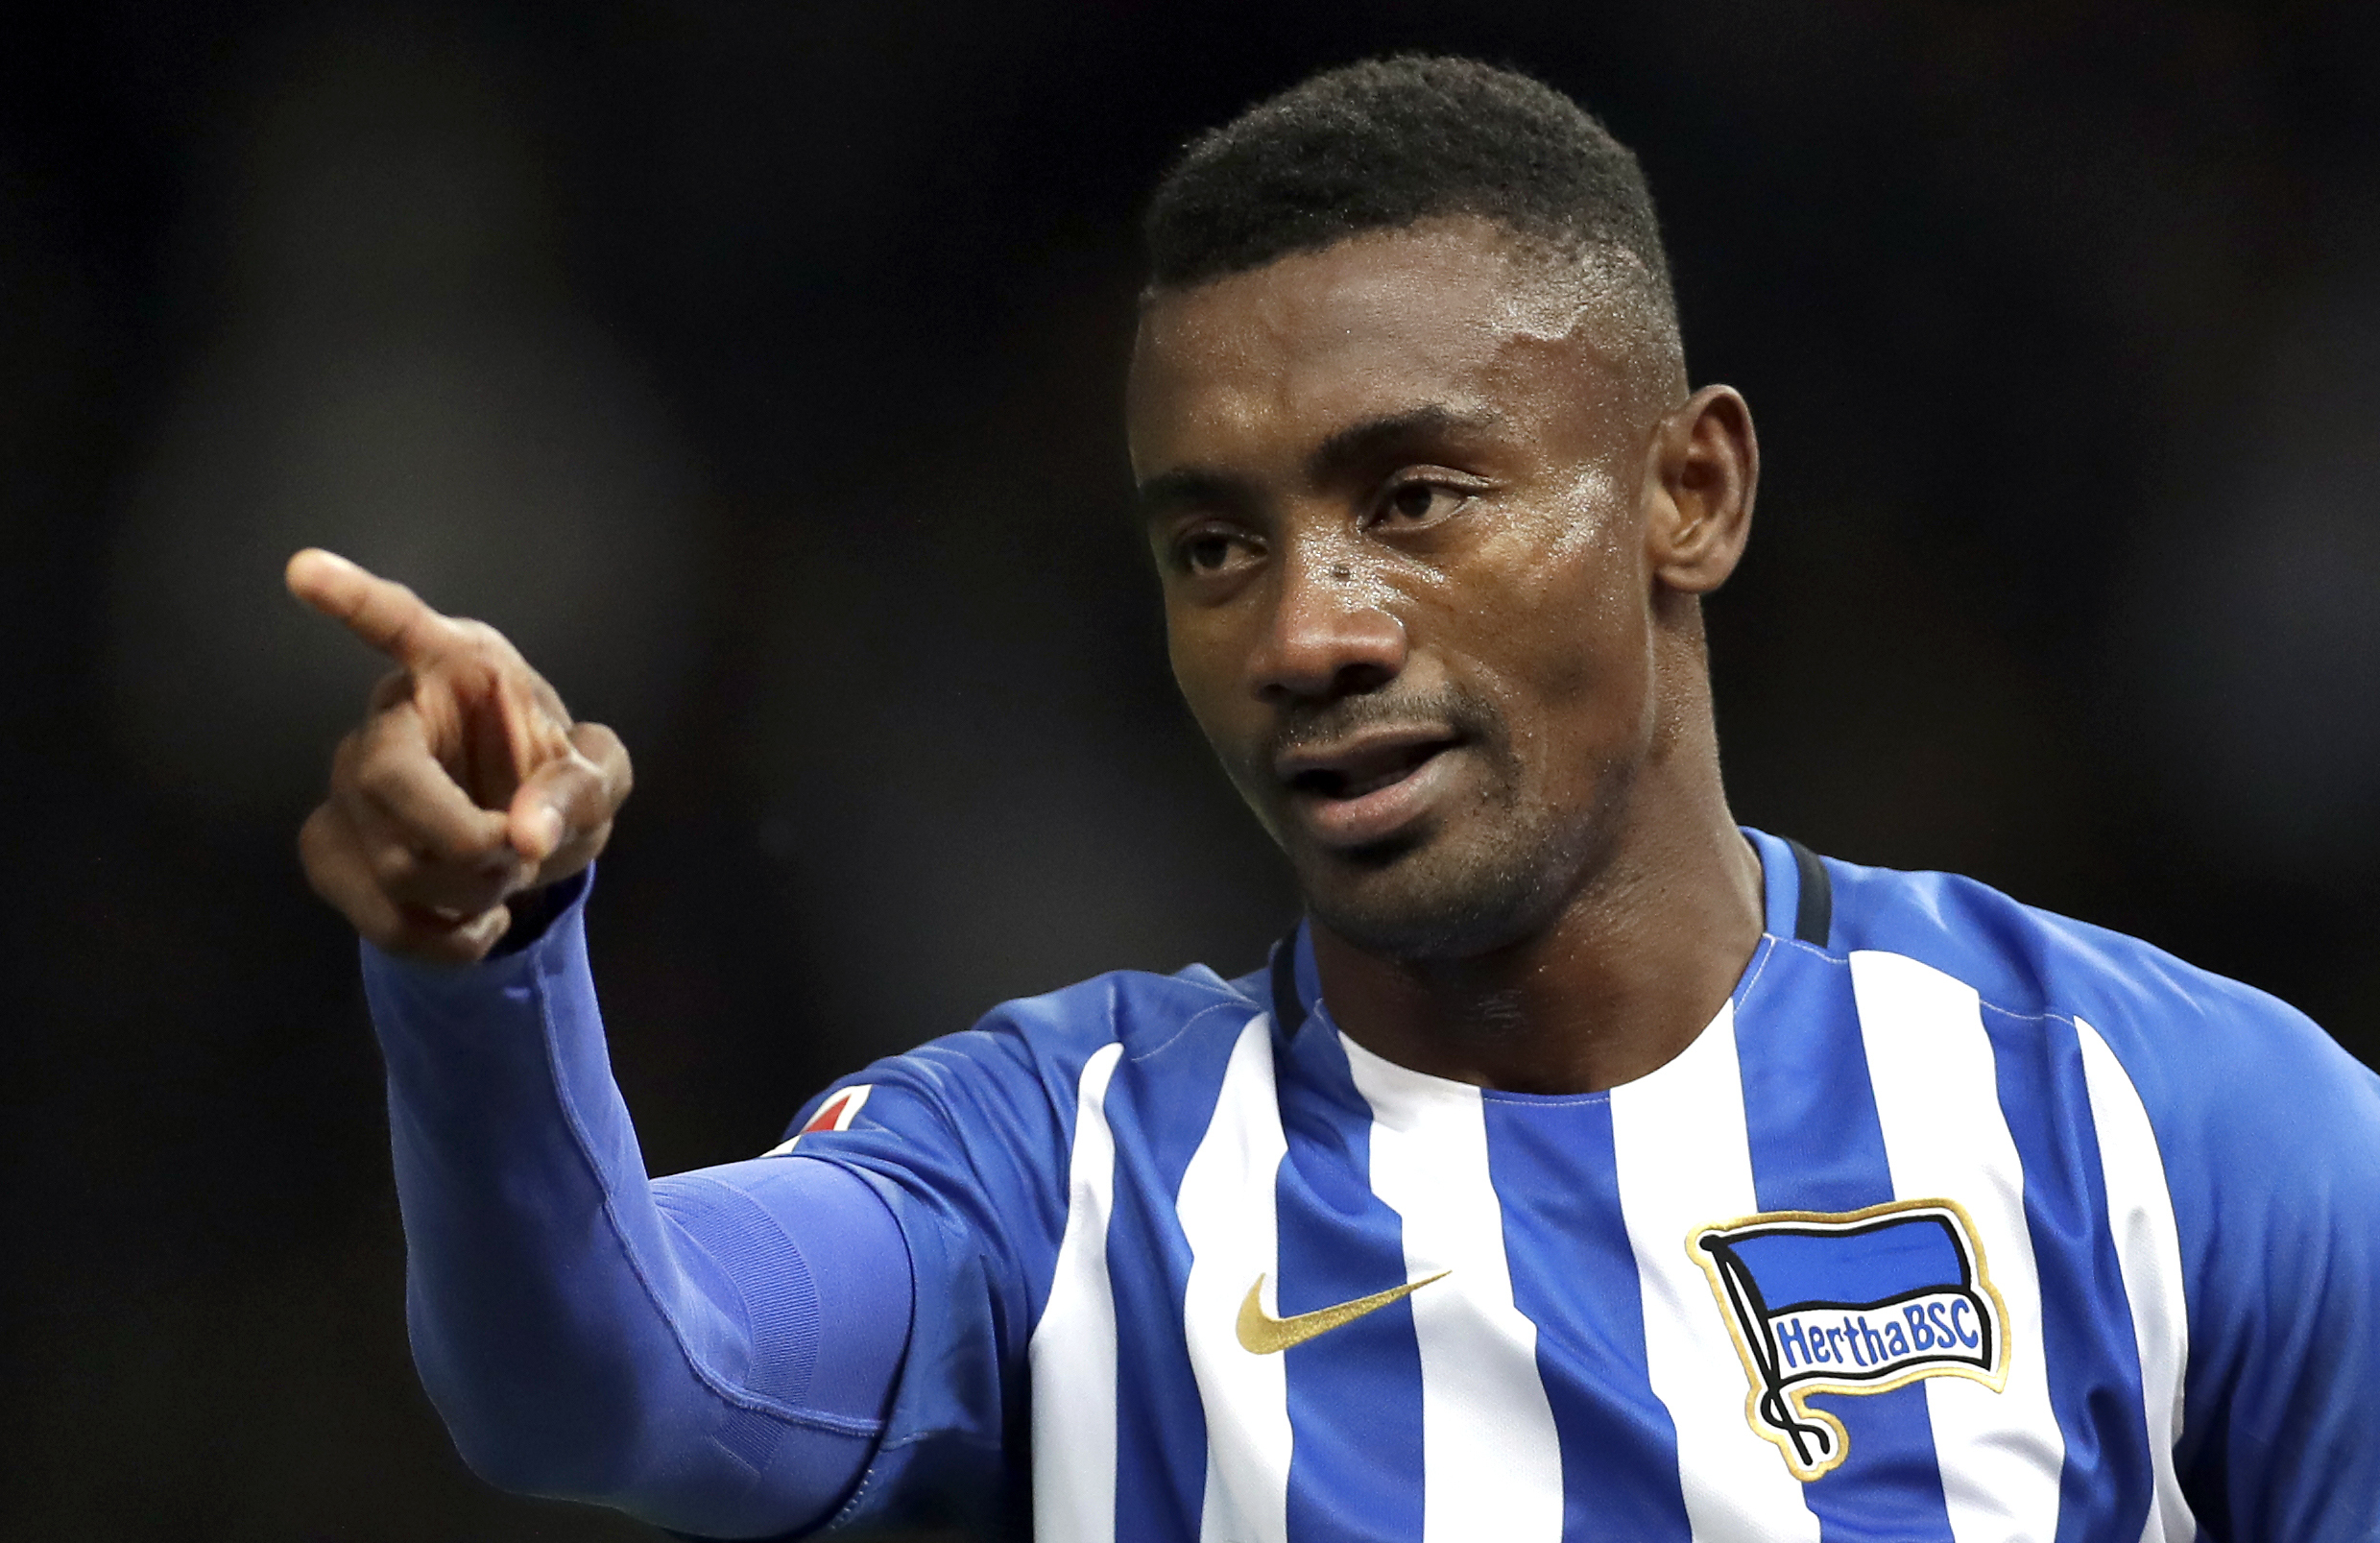 Hertha Berlin suspends Kalou for video flouting virus rules